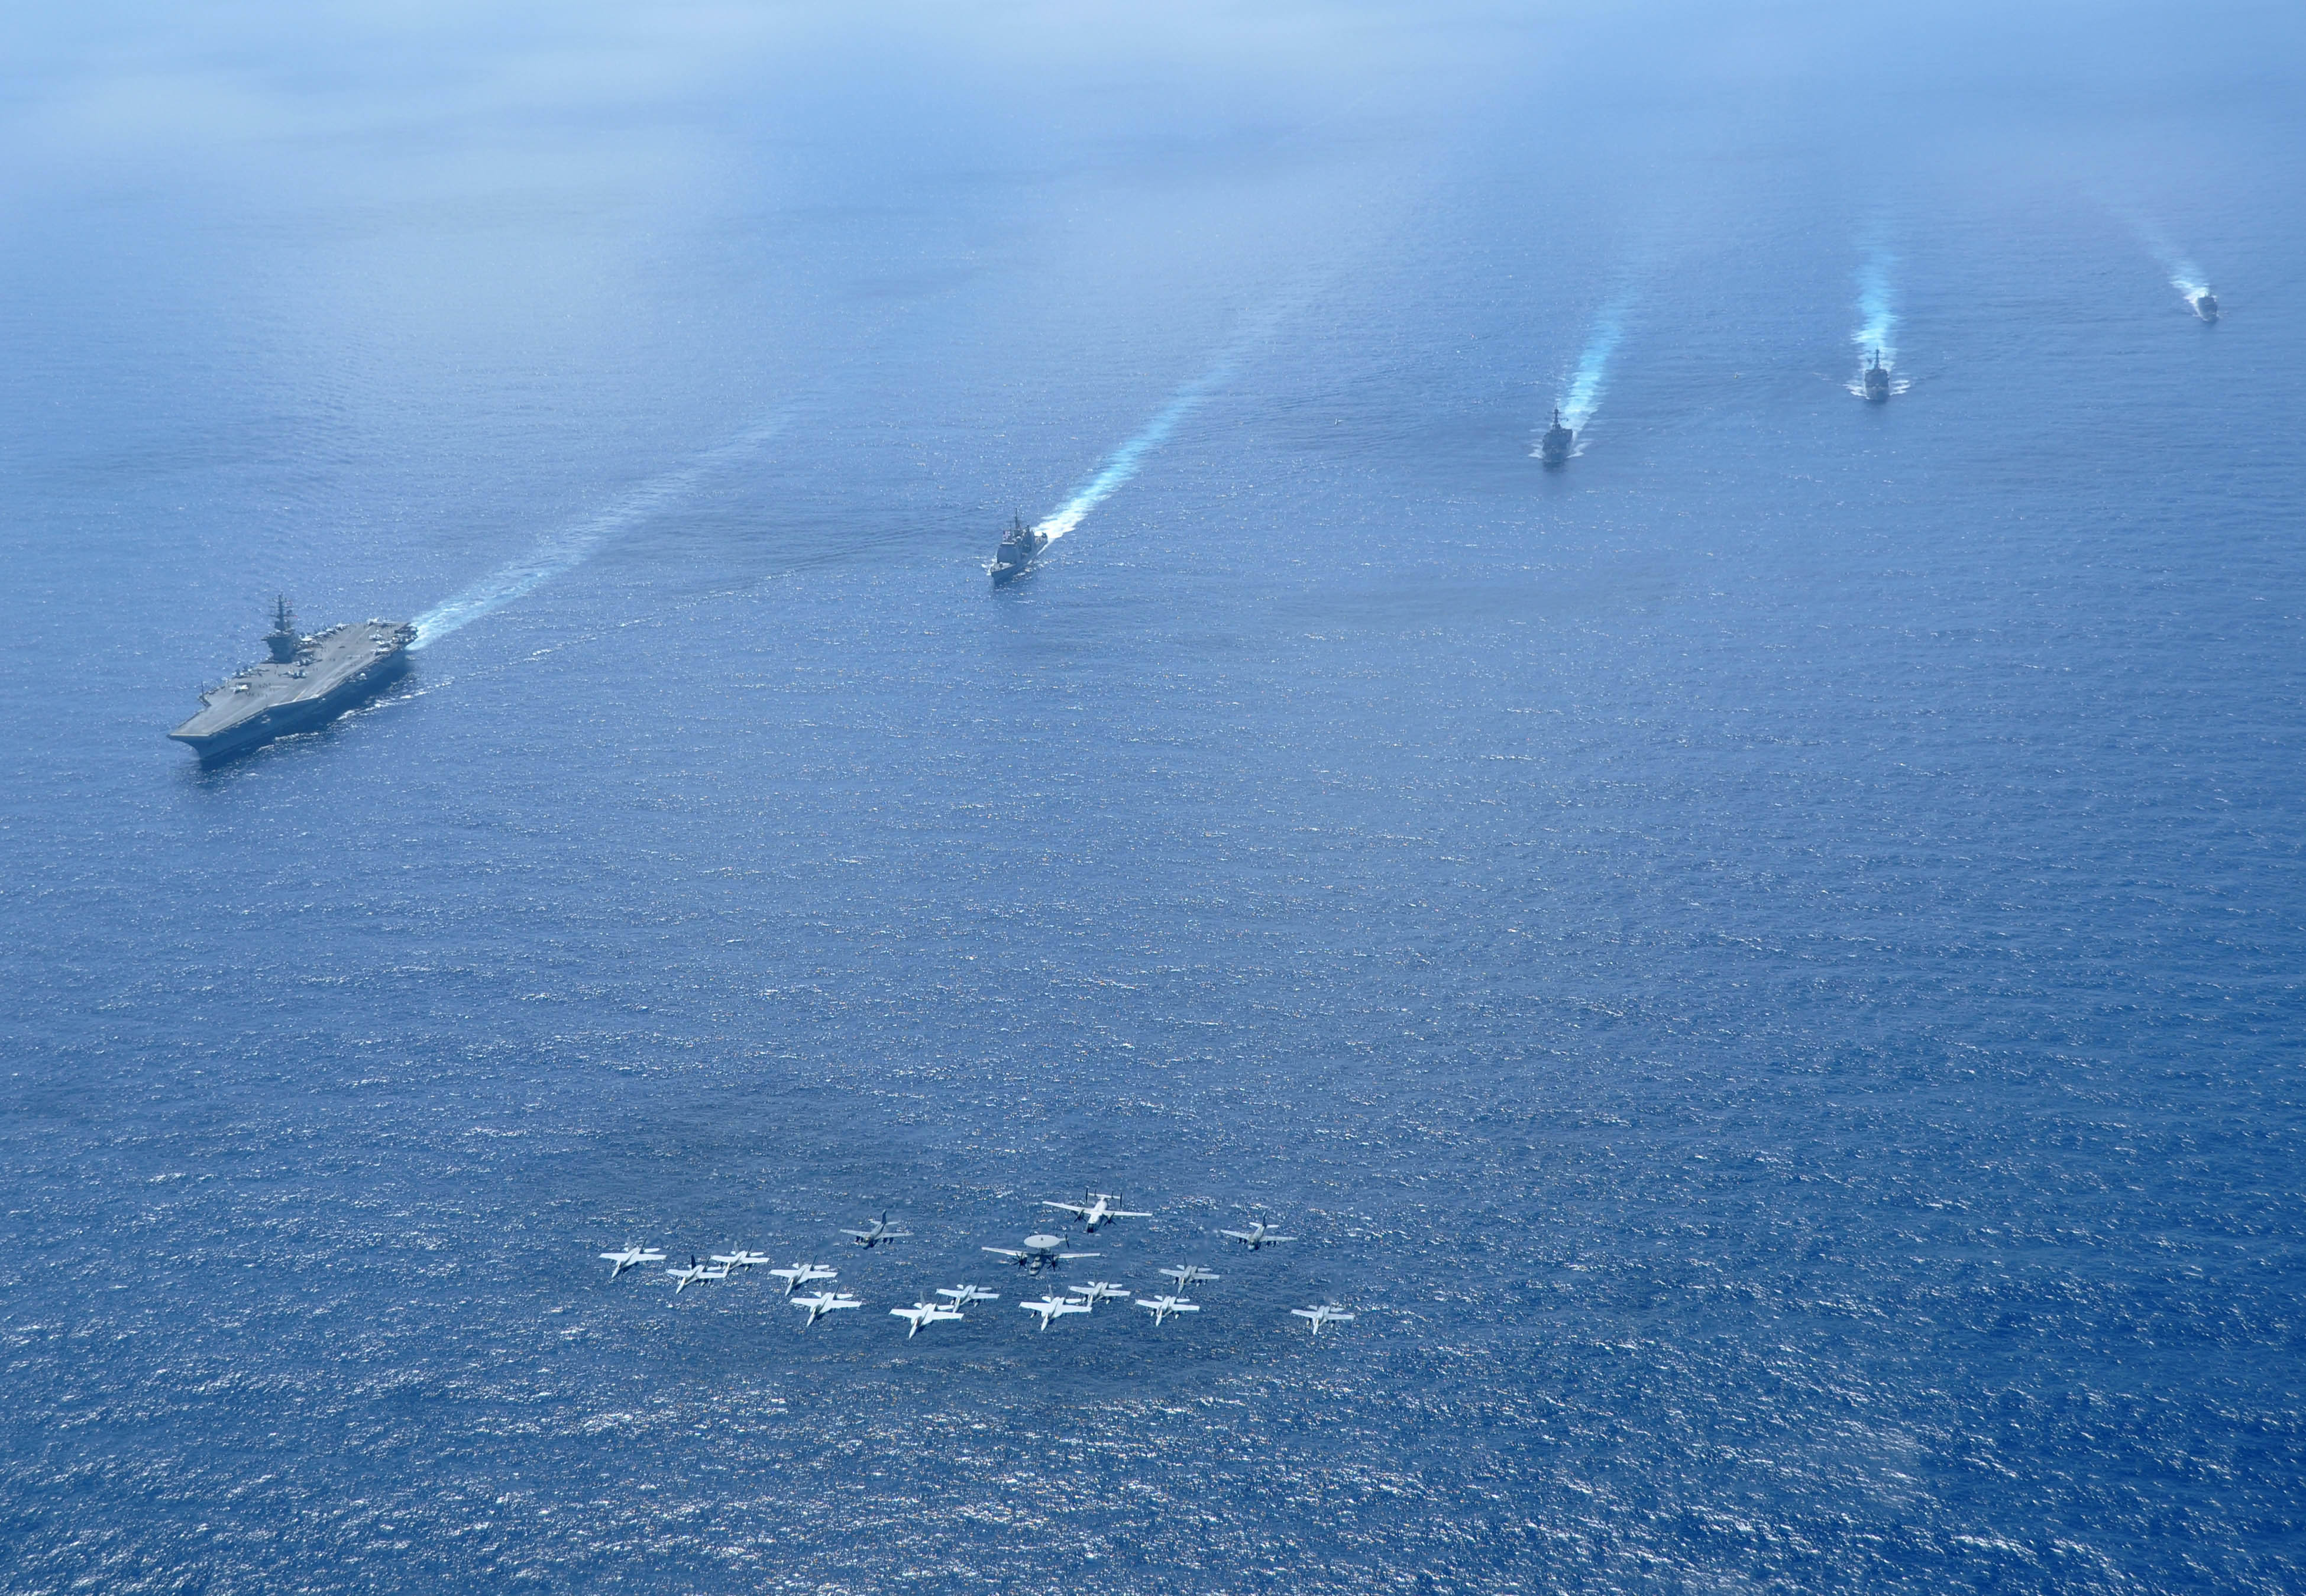 US Navy Strike Force 11 in South China Sea, in full aircraft and naval ship formations; 2010